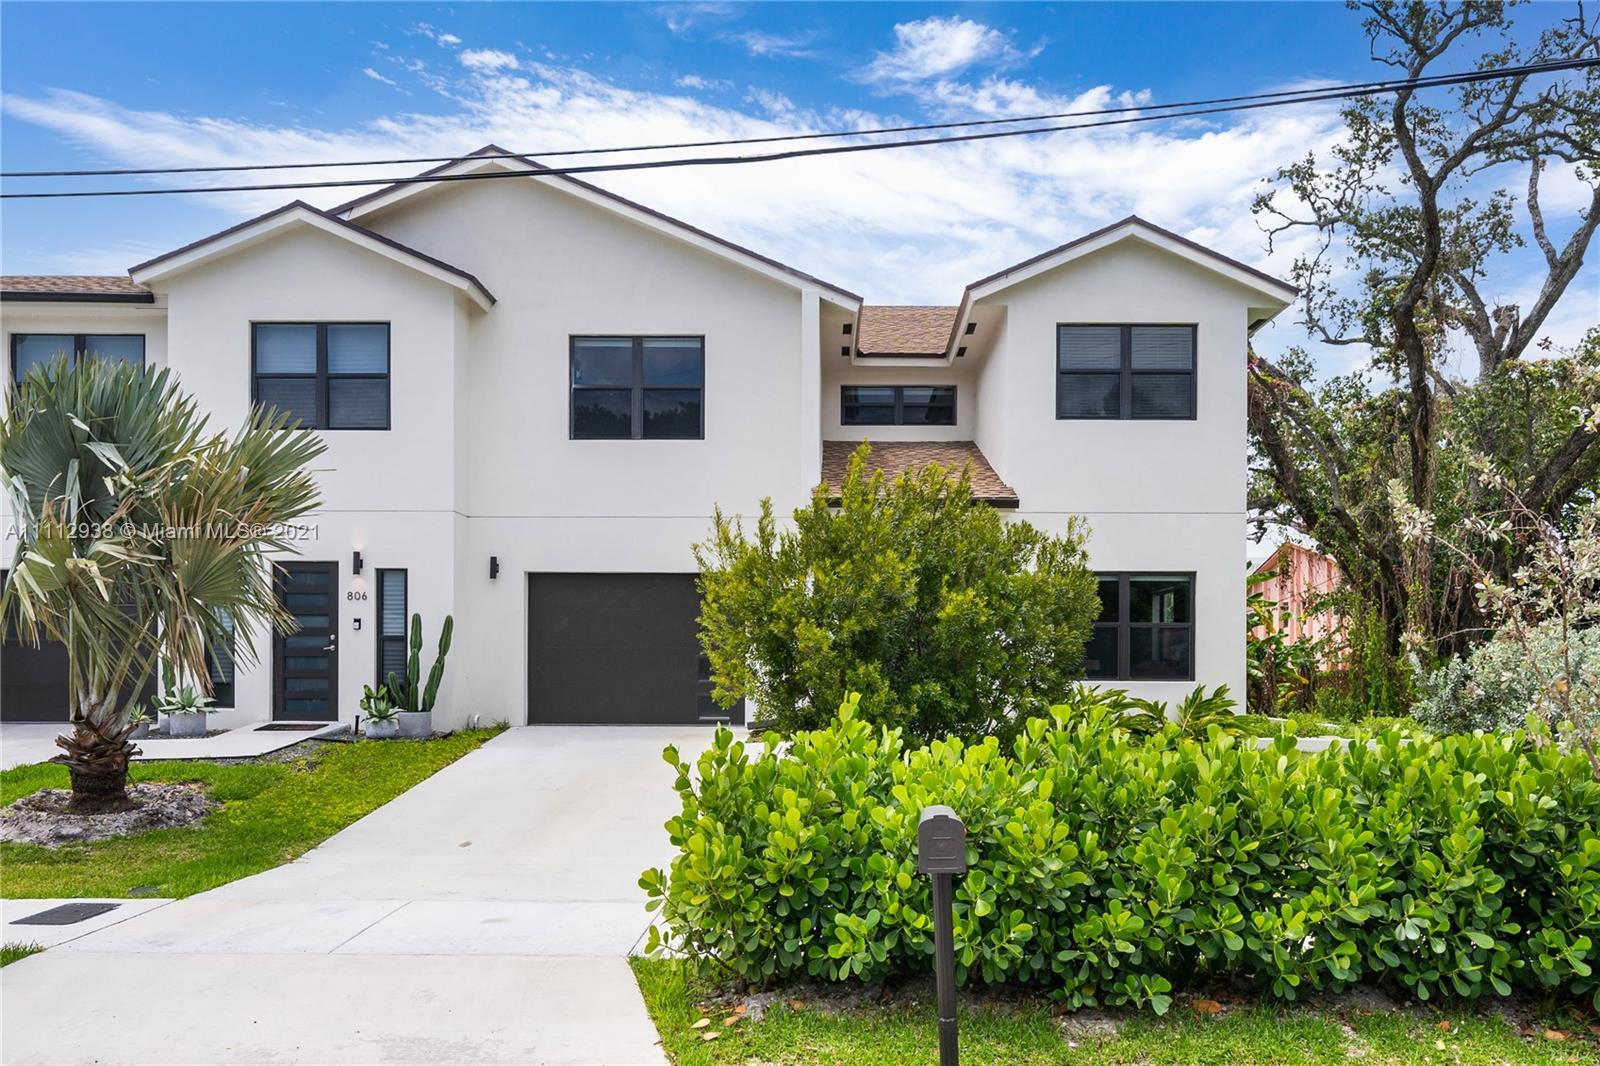 AN ABSOLUTELY STUNNING, MUST SEE 2020 TOWNHOME ON A CORNER LOT. BRIGHT, SPACIOUS, MODERN, ELEGANT DE